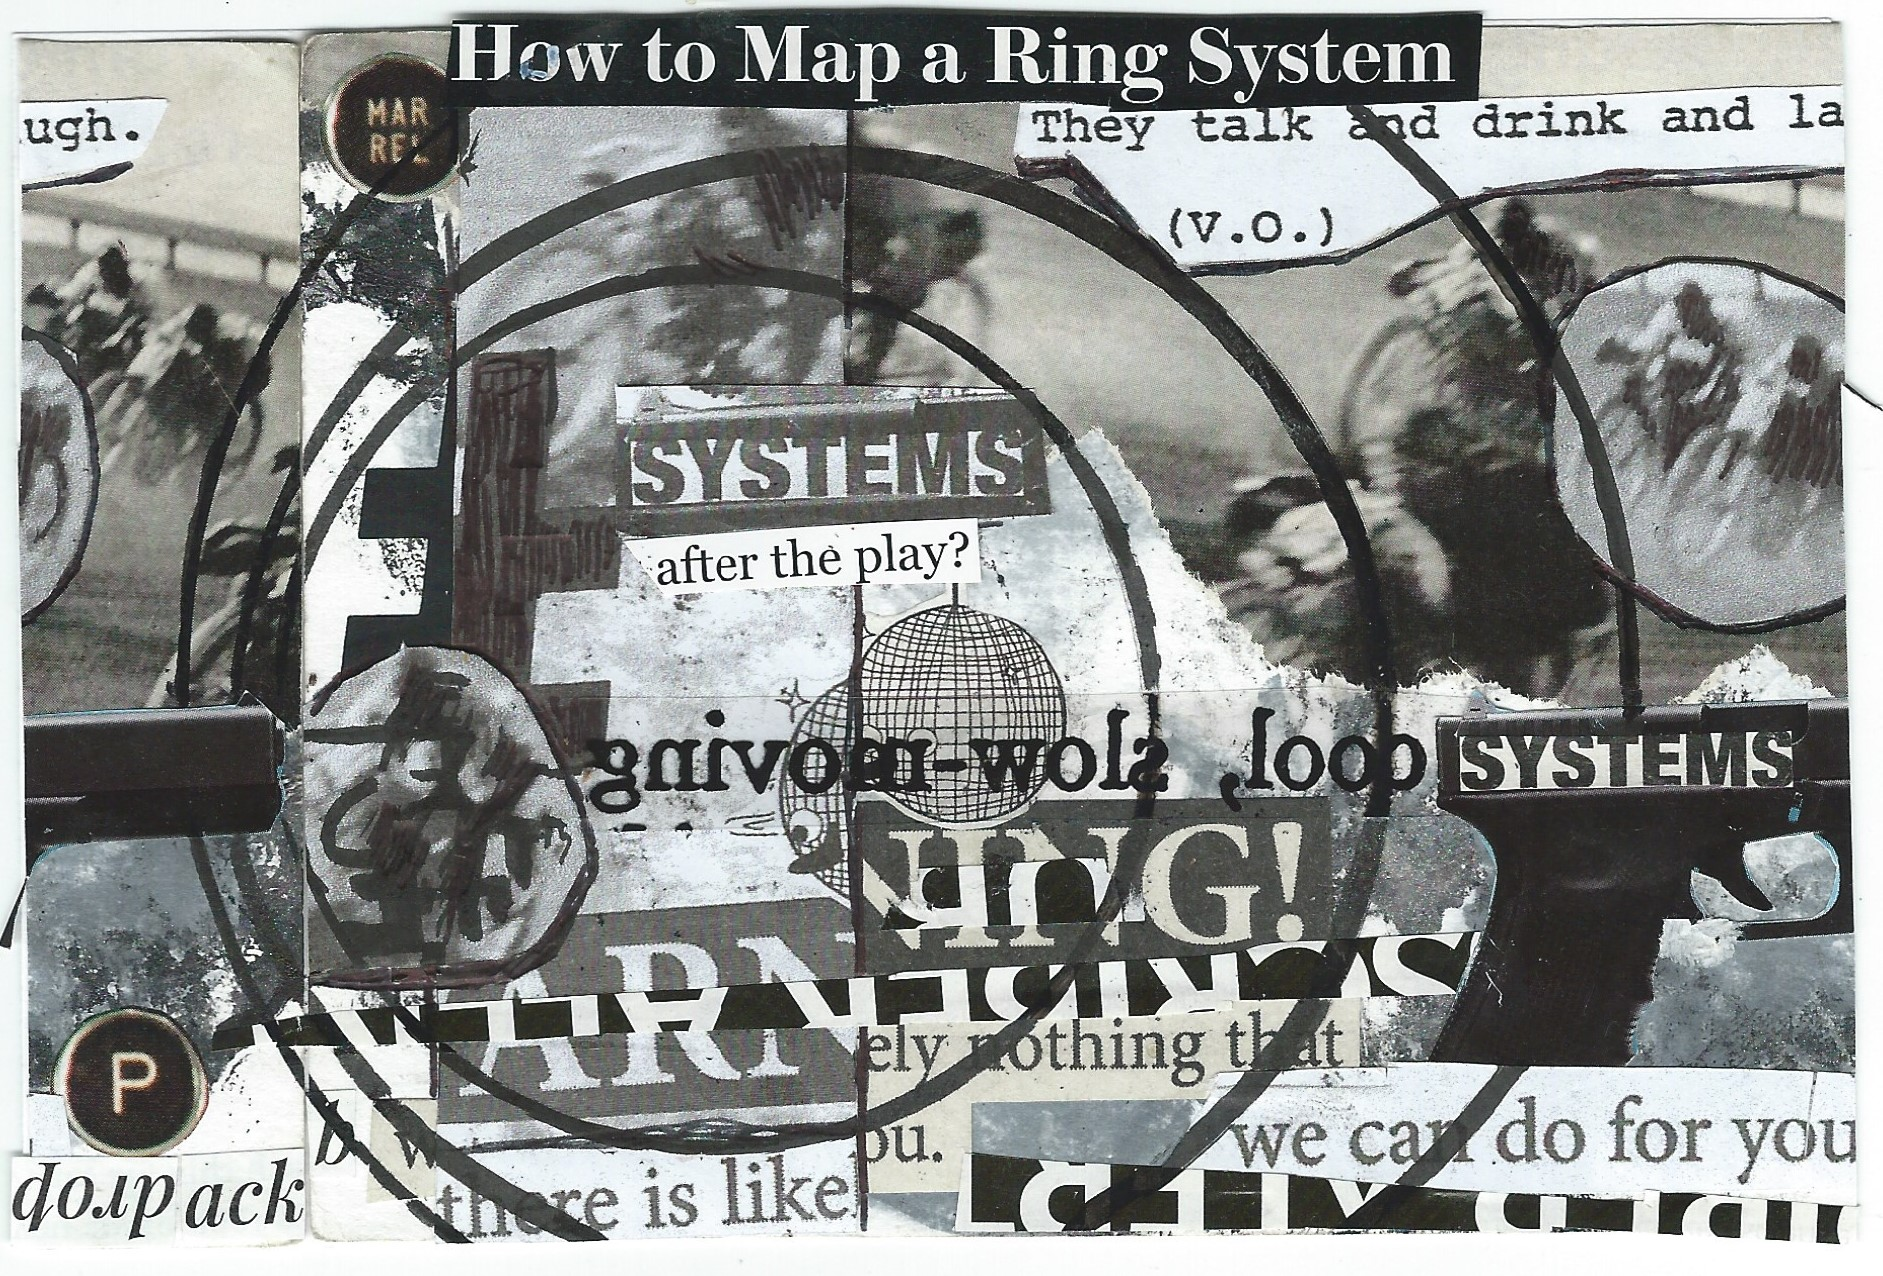 j4 - How to Map a Ring System